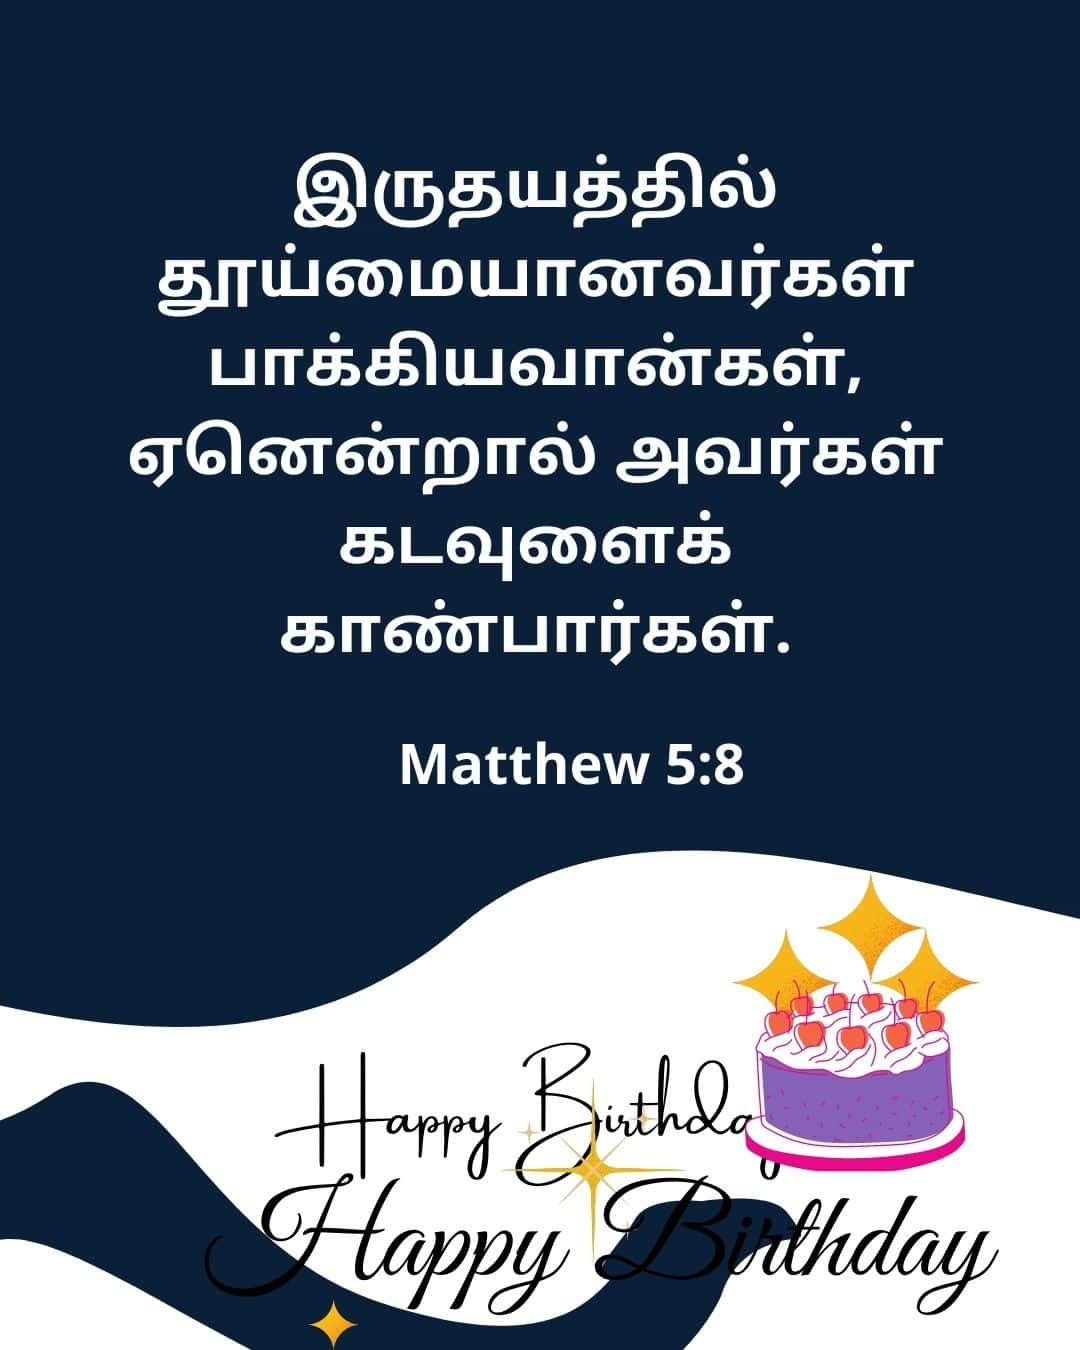 happy birthday wishes images with bible verses in tamil